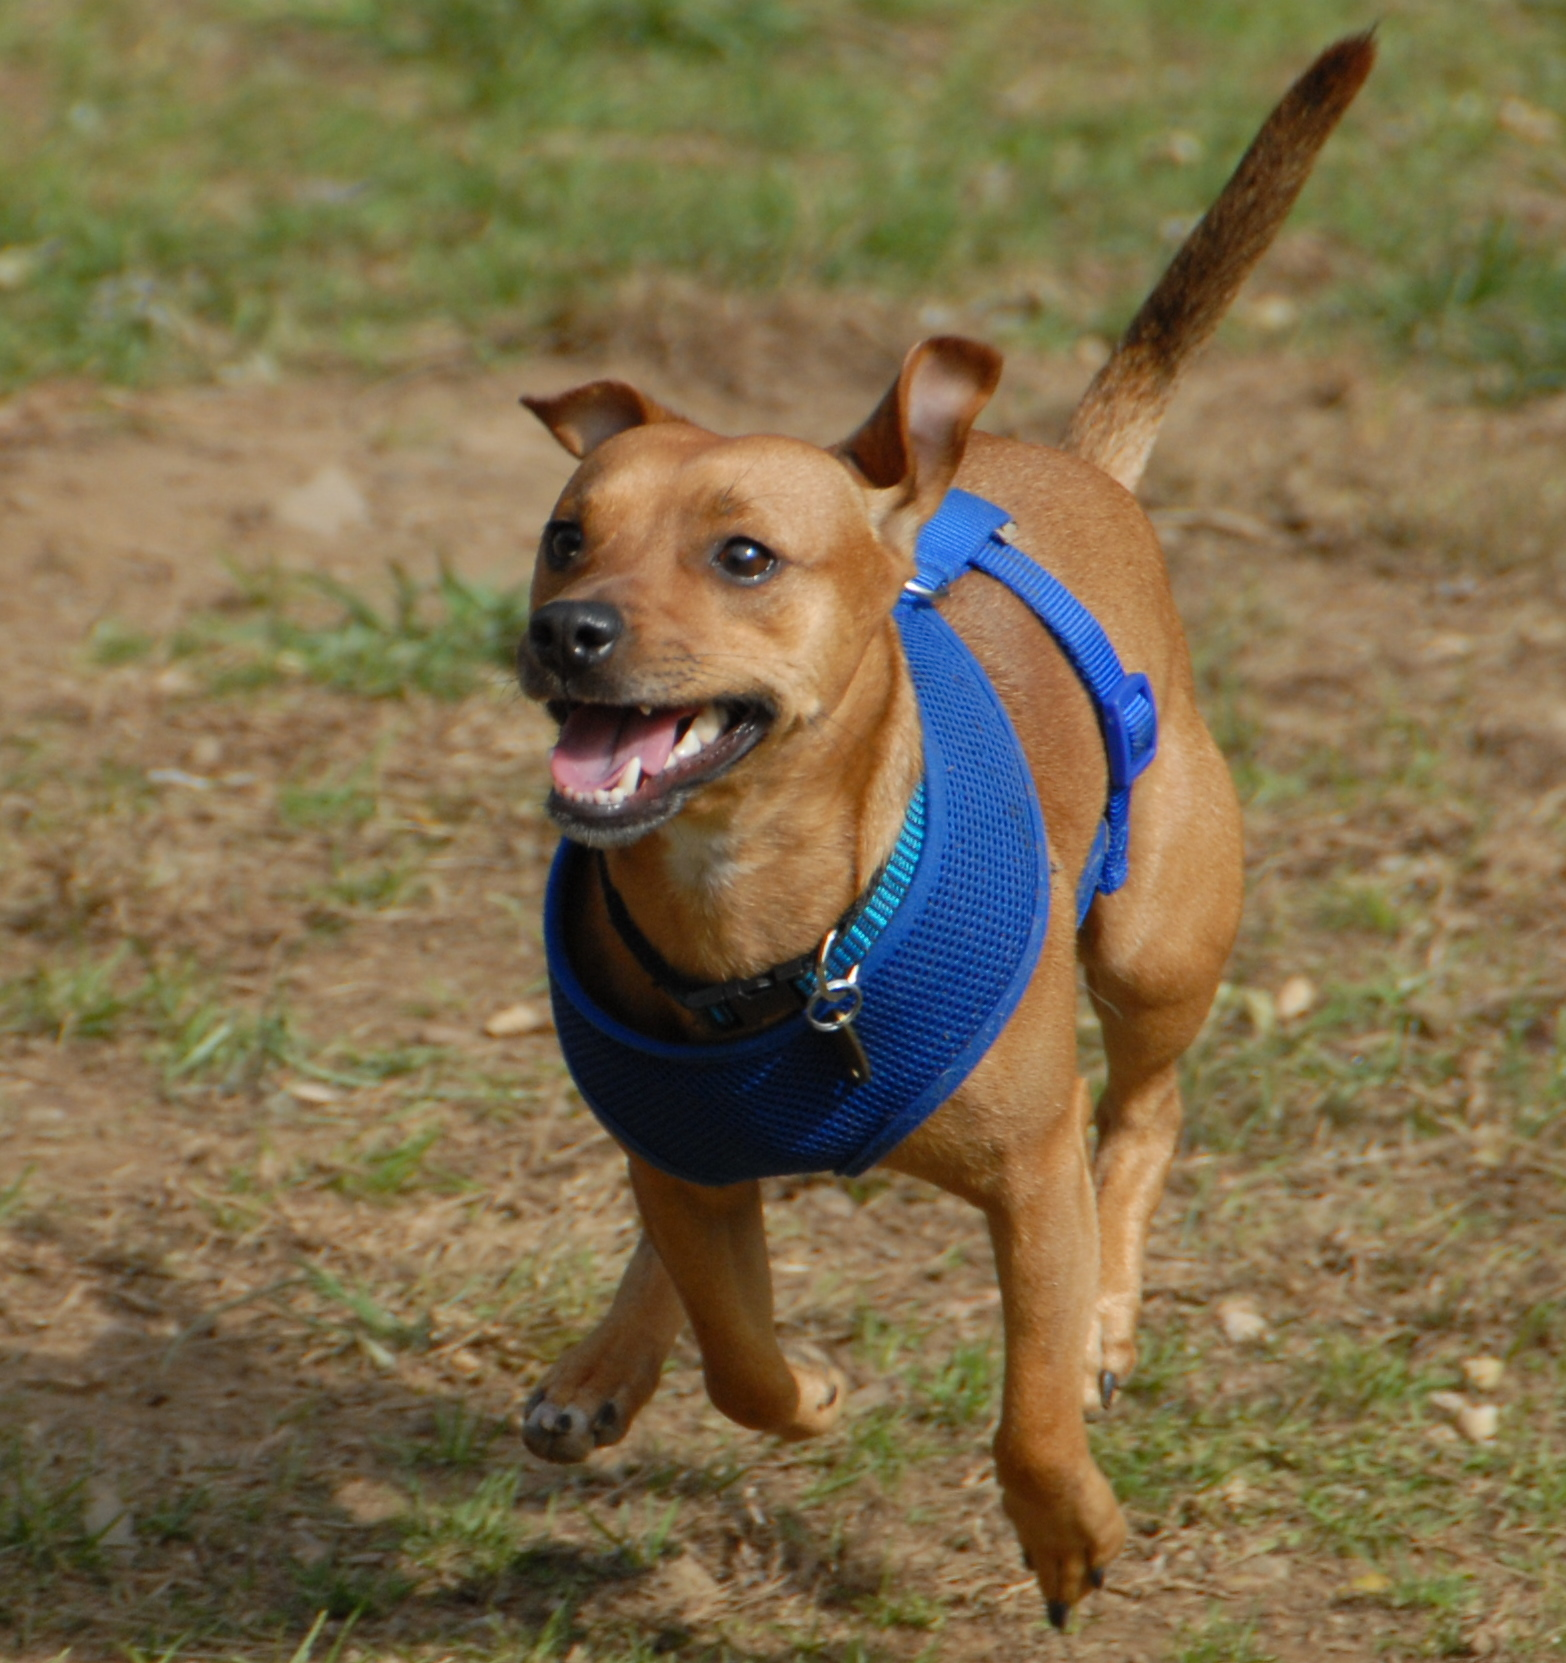 Dutch | Morris County and Denville, NJ Dog Parks